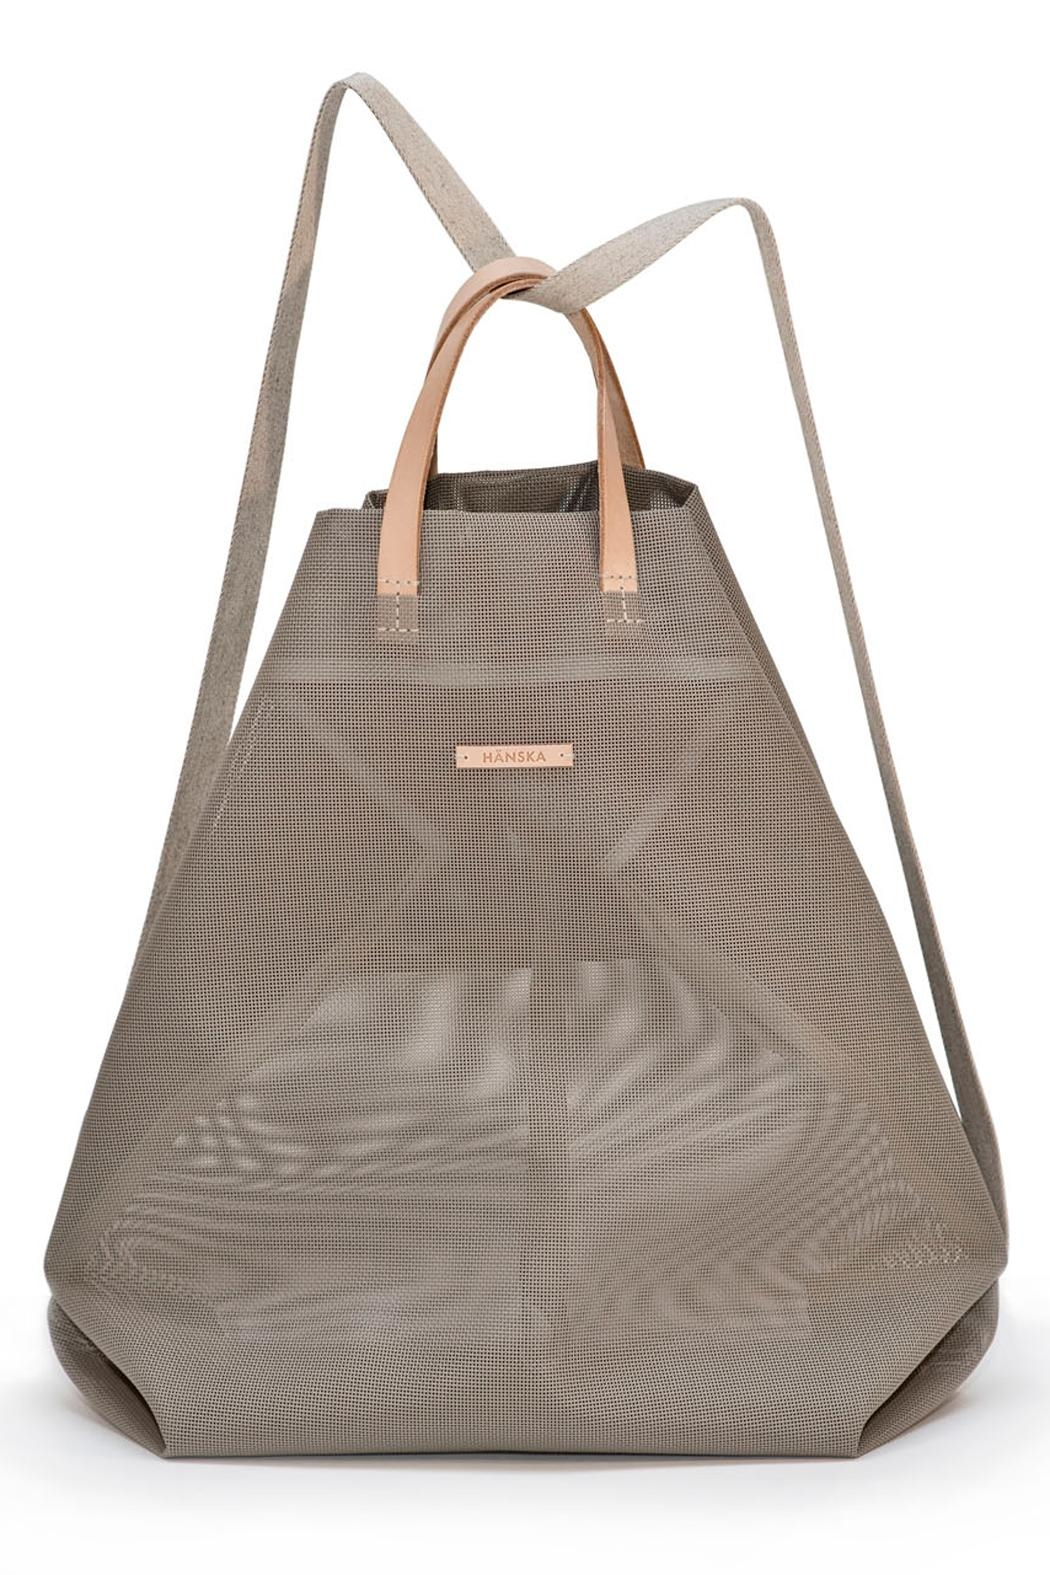 Hänska Shopper Backpack Taupe - Main Image